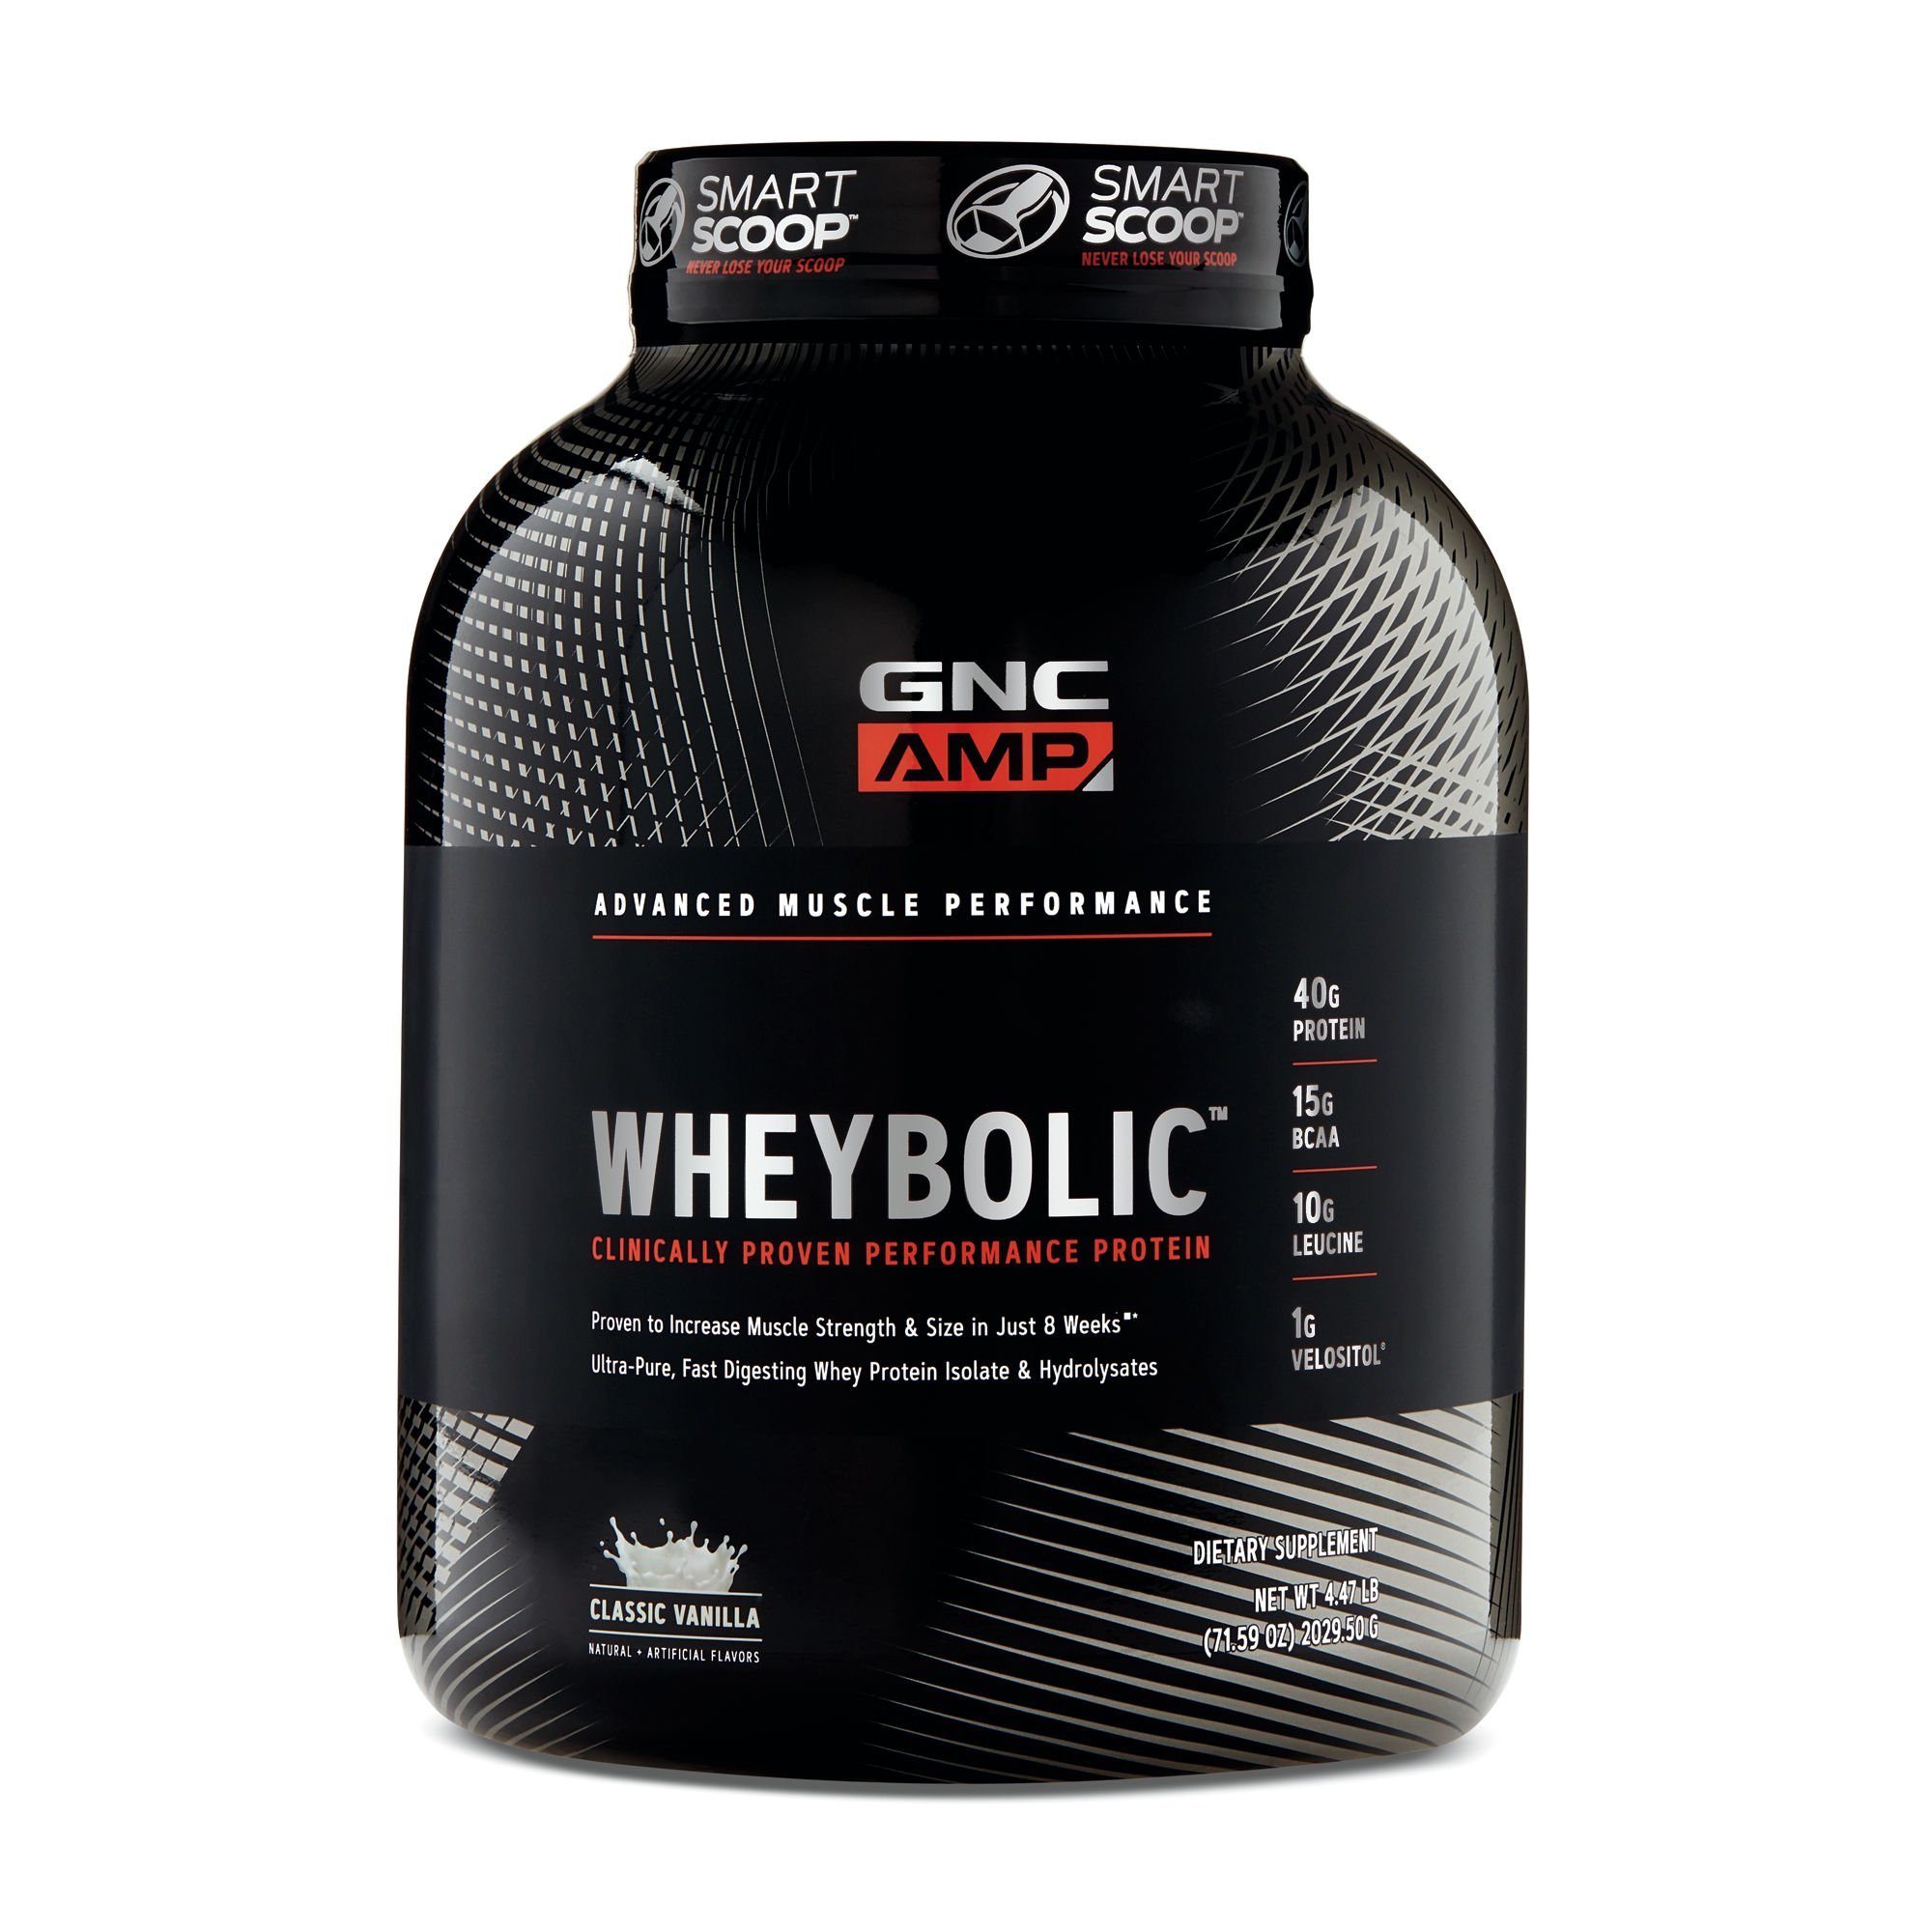 GNC AMP Wheybolic Whey Protein Powder, Classic Vanilla, 33 Servings, Contains 40 Protein, 15g BCAA, and 10g Leucine Per Serving